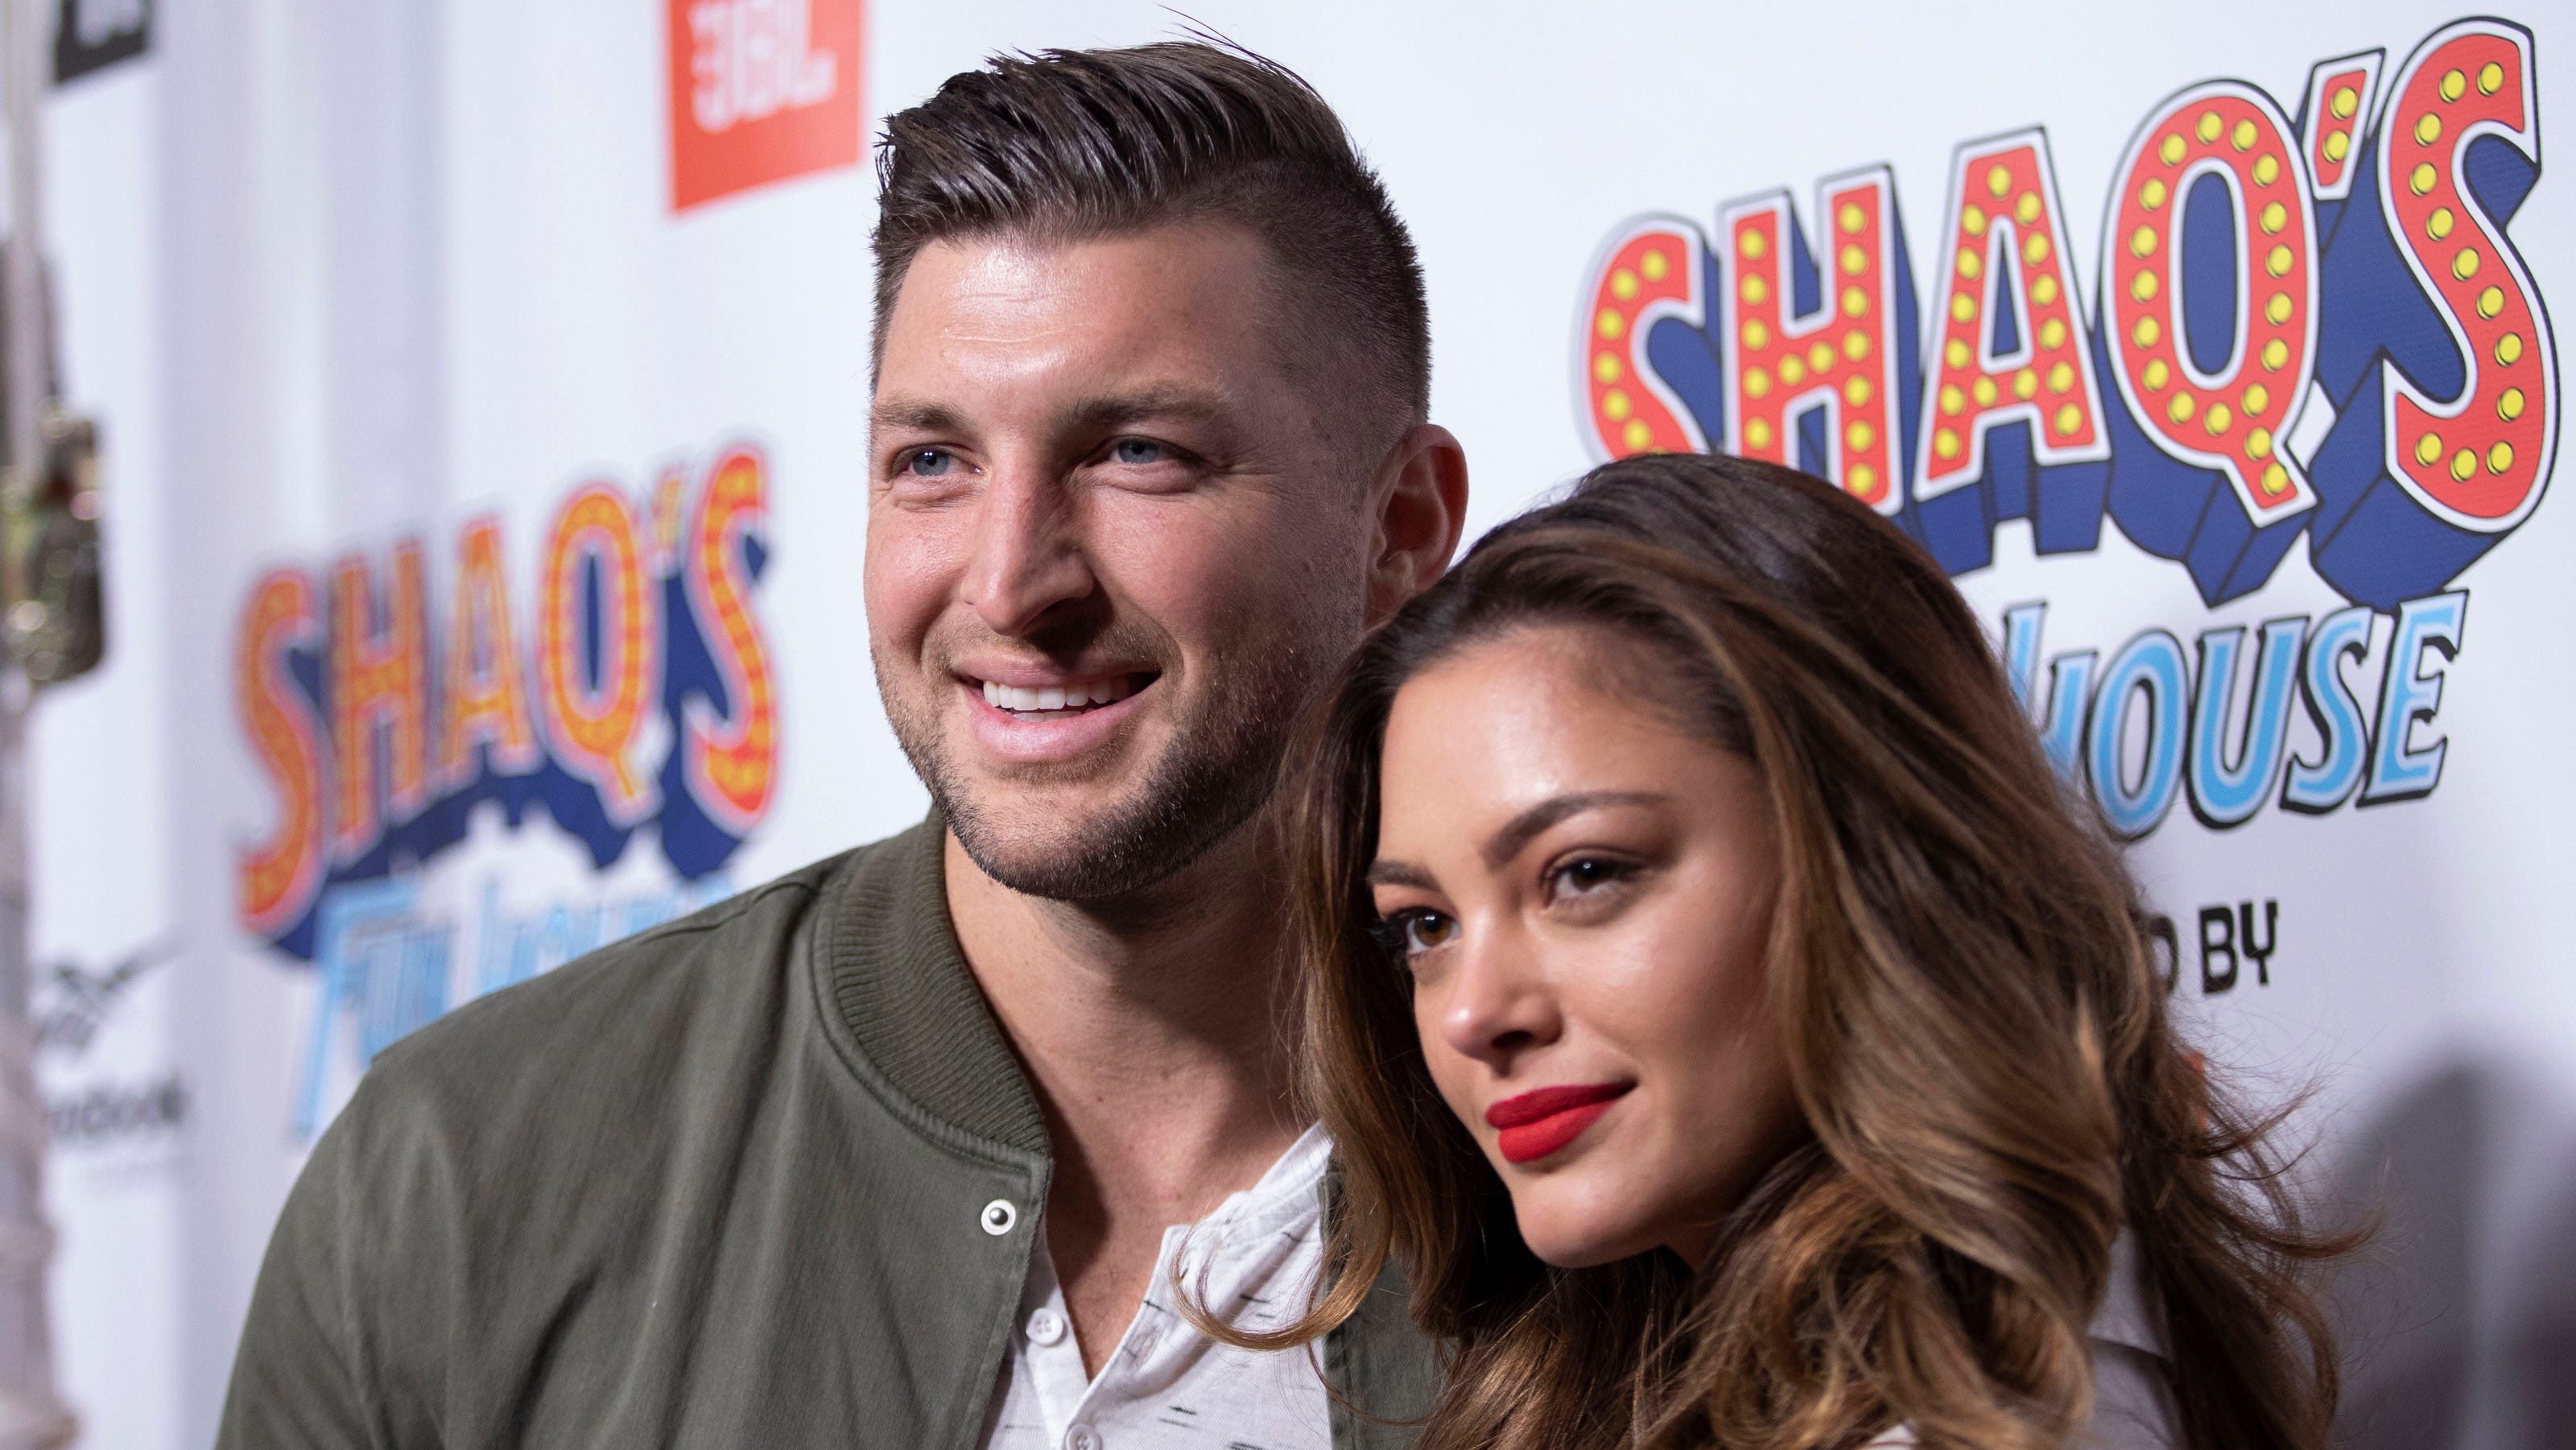 who is tebow dating